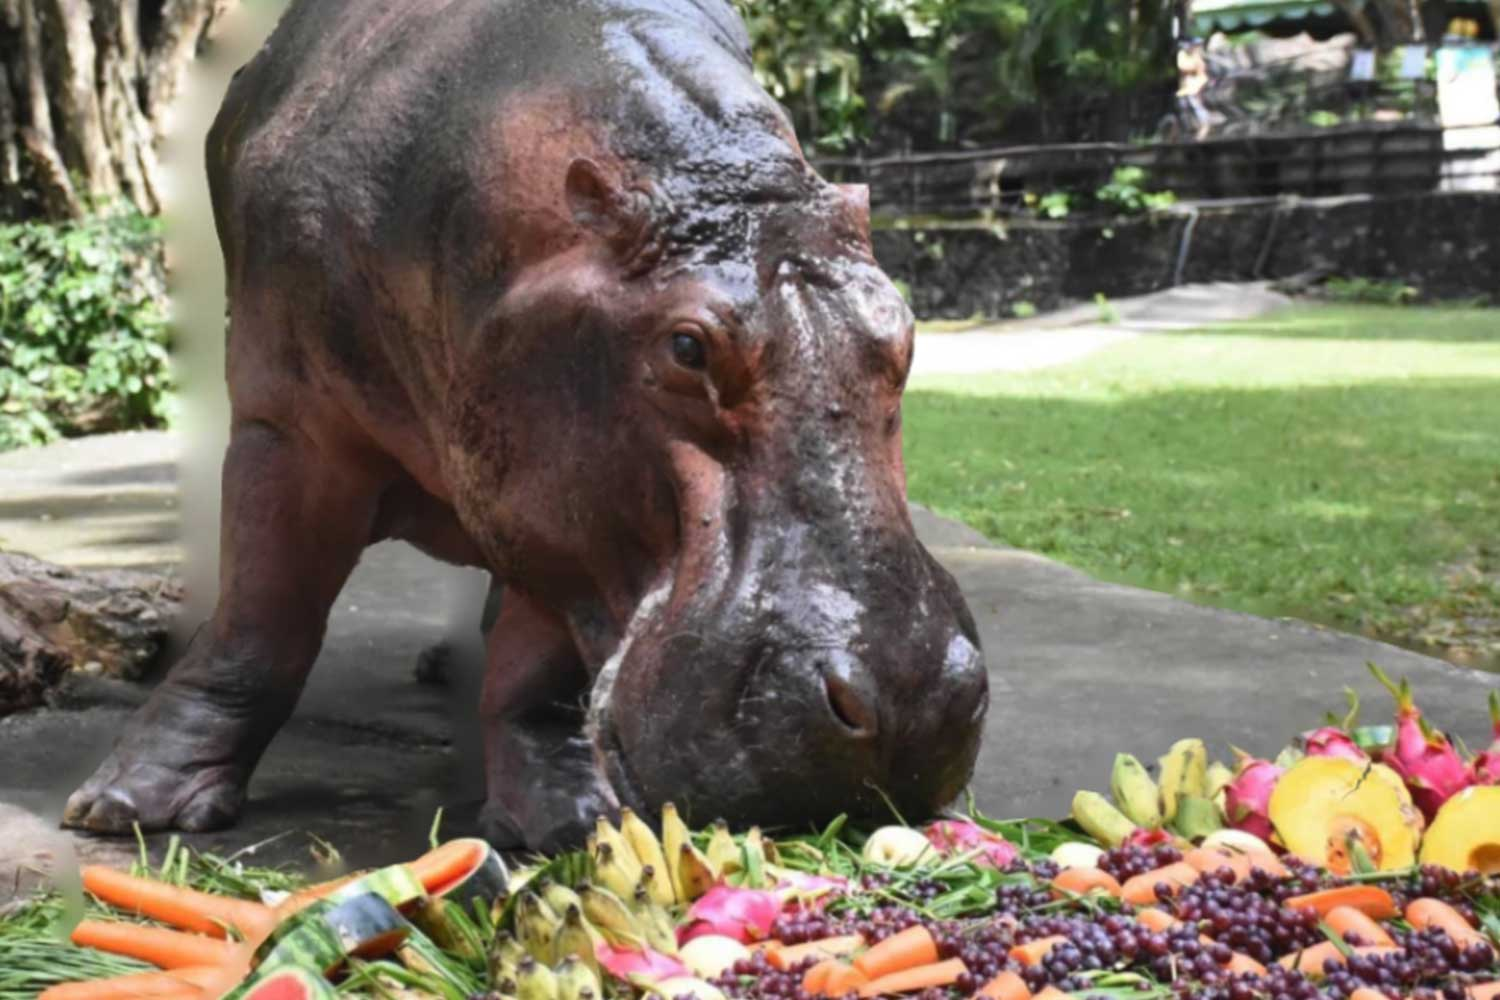 Fifty-five-year-old Mae Mali, the oldest hippo in Thailand, snacks on her birthday cake at Khao Kheow Open Zoo in Chon Buri on Tuesday. (Photo: @thailandzoo, the Zoological Park Organisation of Thailand Facebook page)